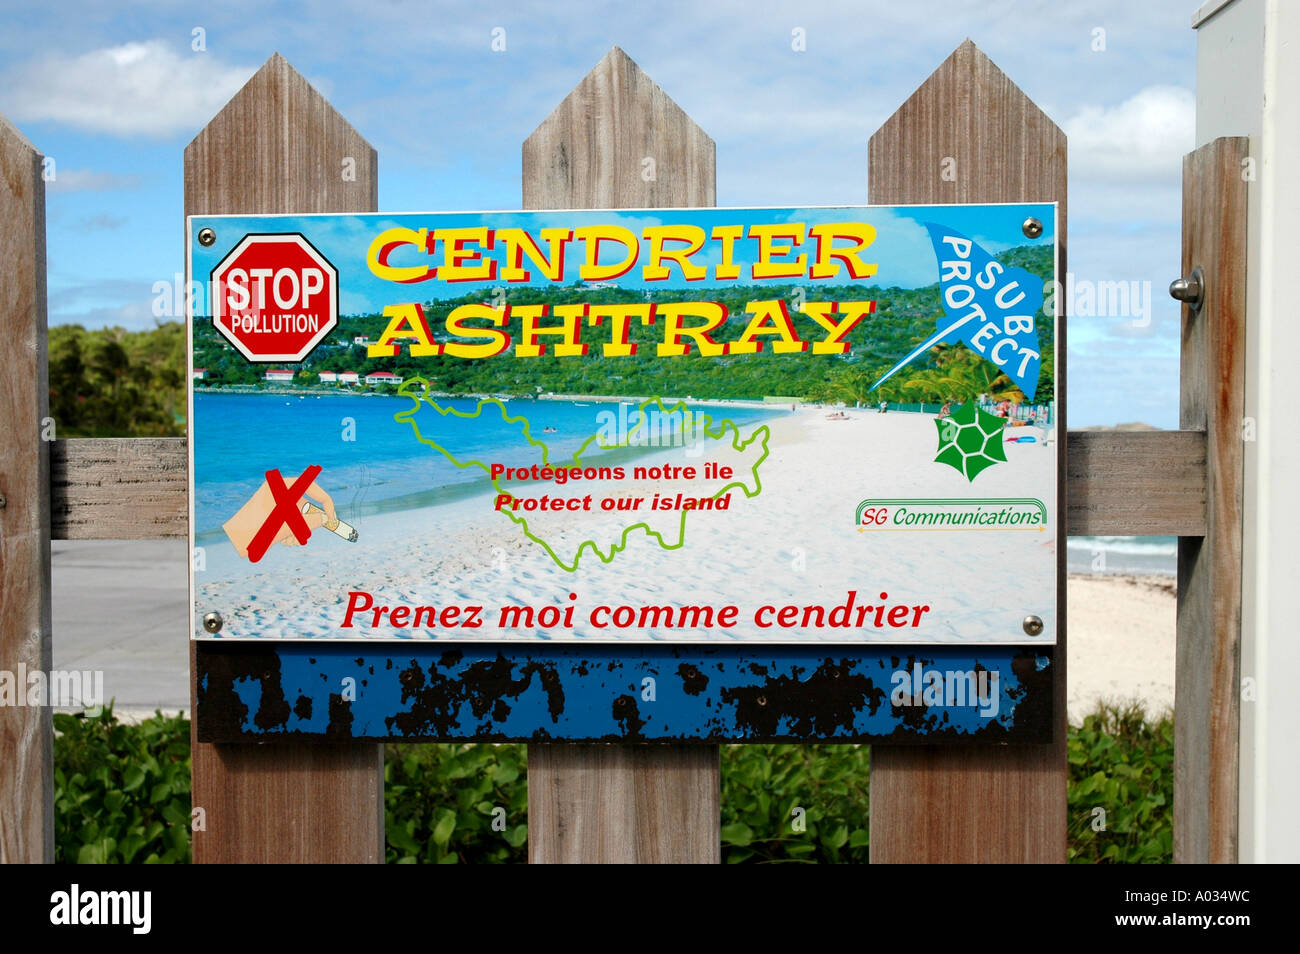 Saint St Barths st barts antismoking sign French West Indies - Stock Image